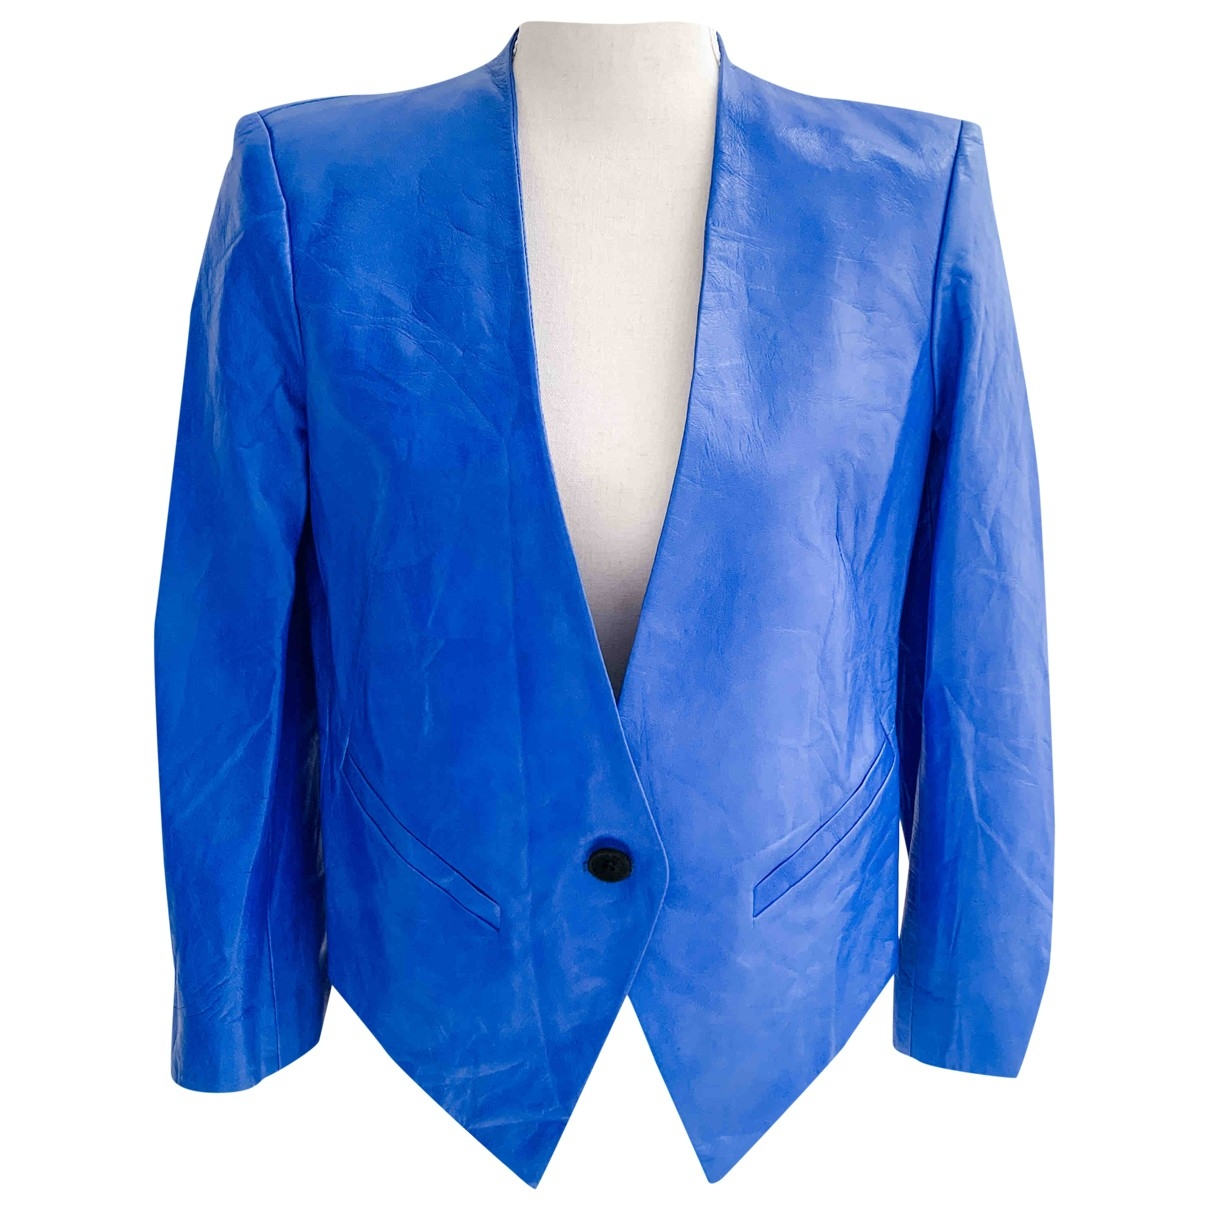 Helmut Lang \N Blue Leather jacket for Women 4 US